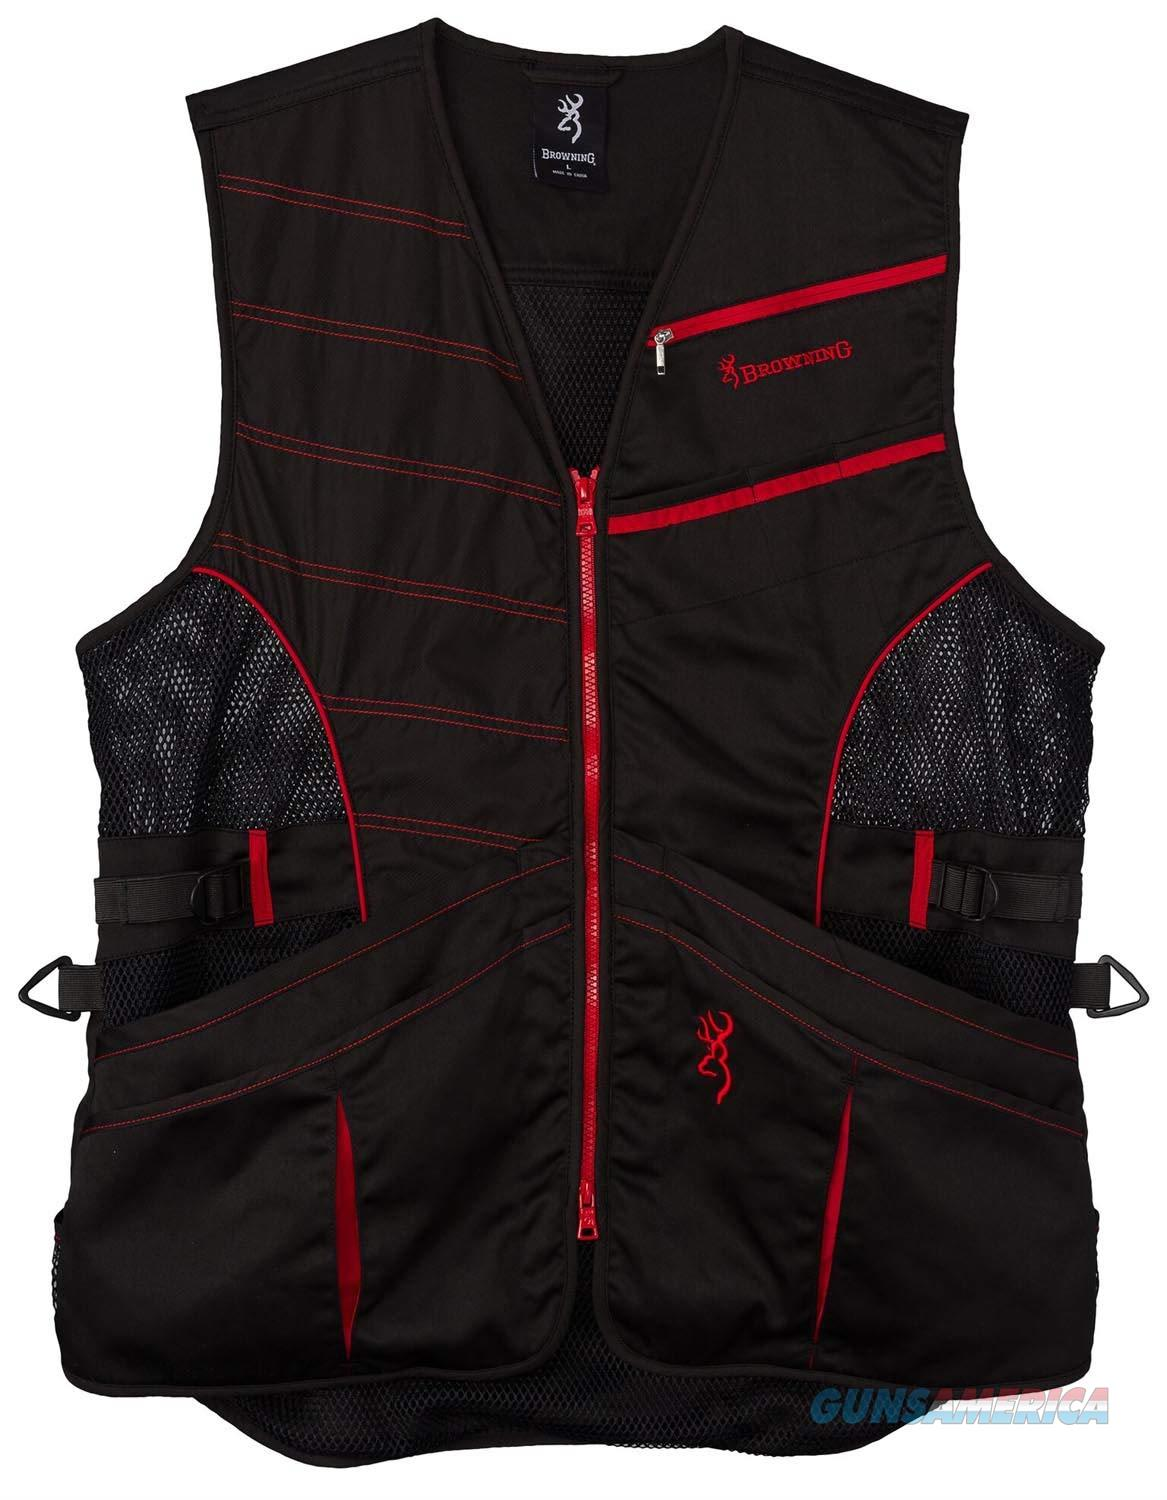 Browning Ace Shooting Vest Black Red XL  Non-Guns > Shotgun Sports > Vests/Jackets